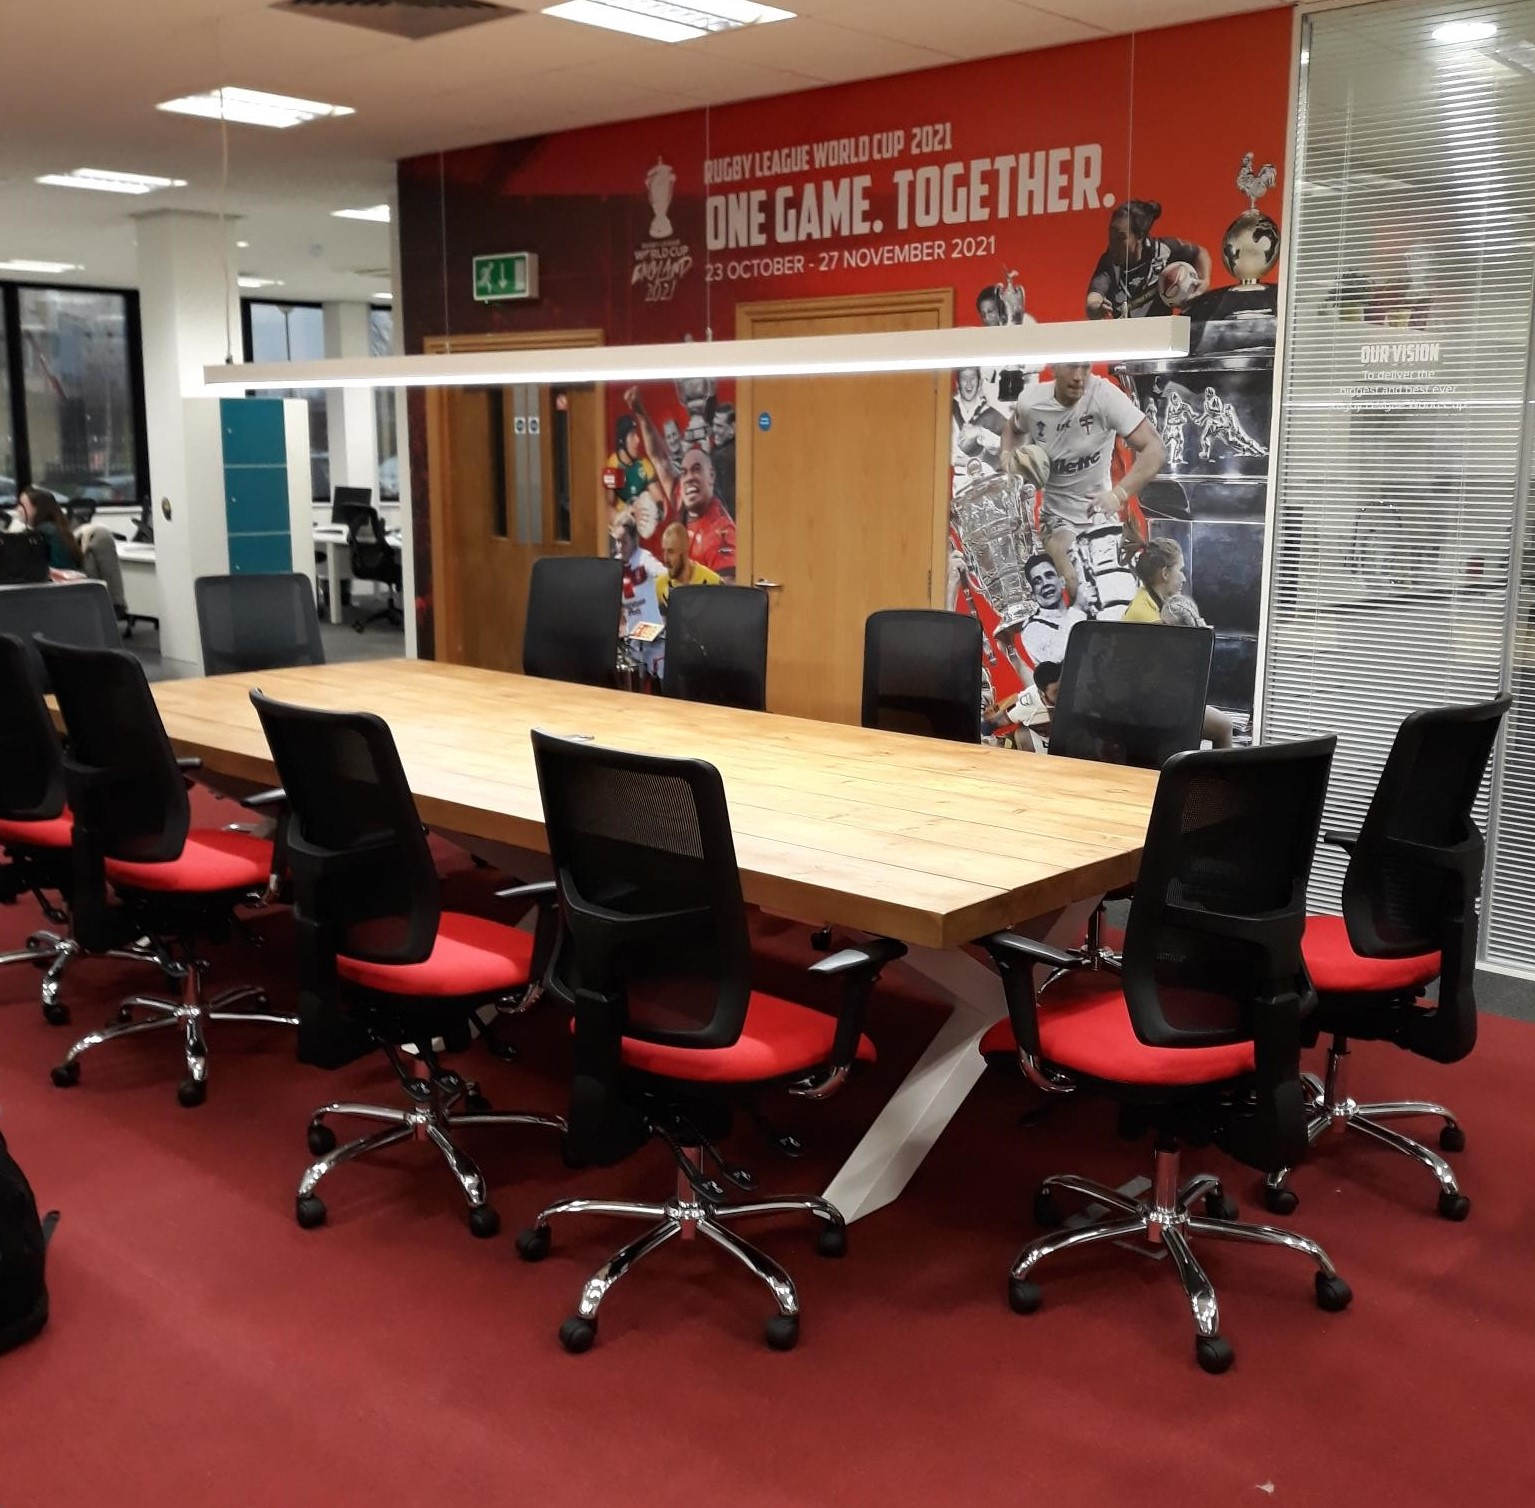 Bespoke Made Meeting Room Table For The Rugby World Cup 2021